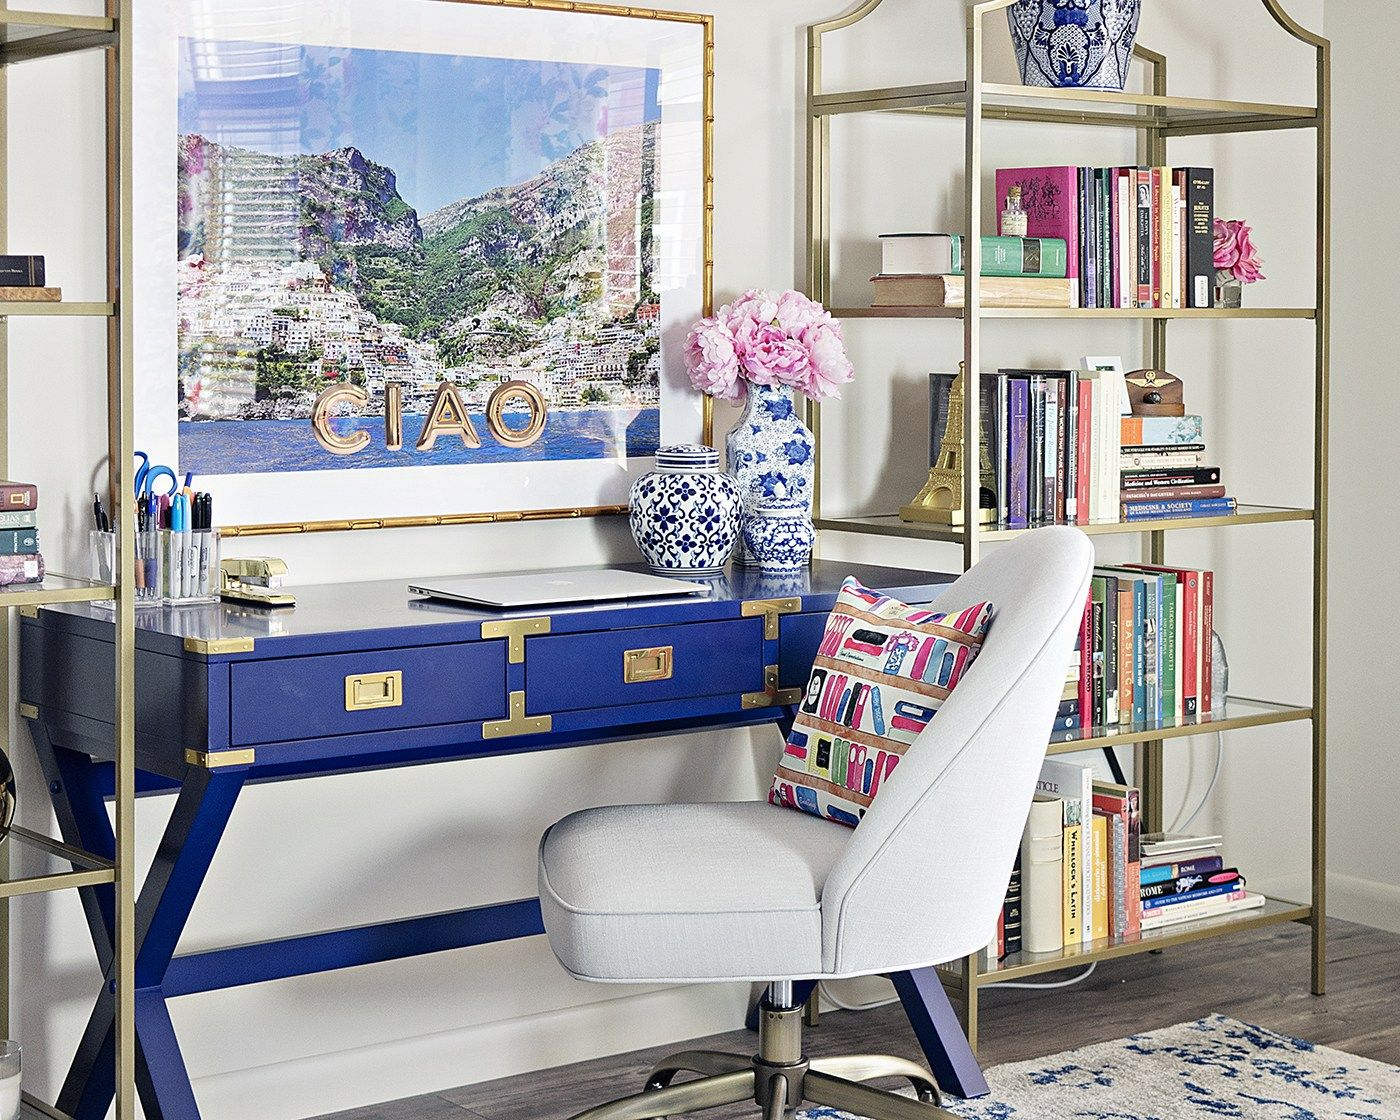 How To Translate Academic Skills Into Workplace Skills Living Room Reveal Stylish Office Decor Kid Spaces